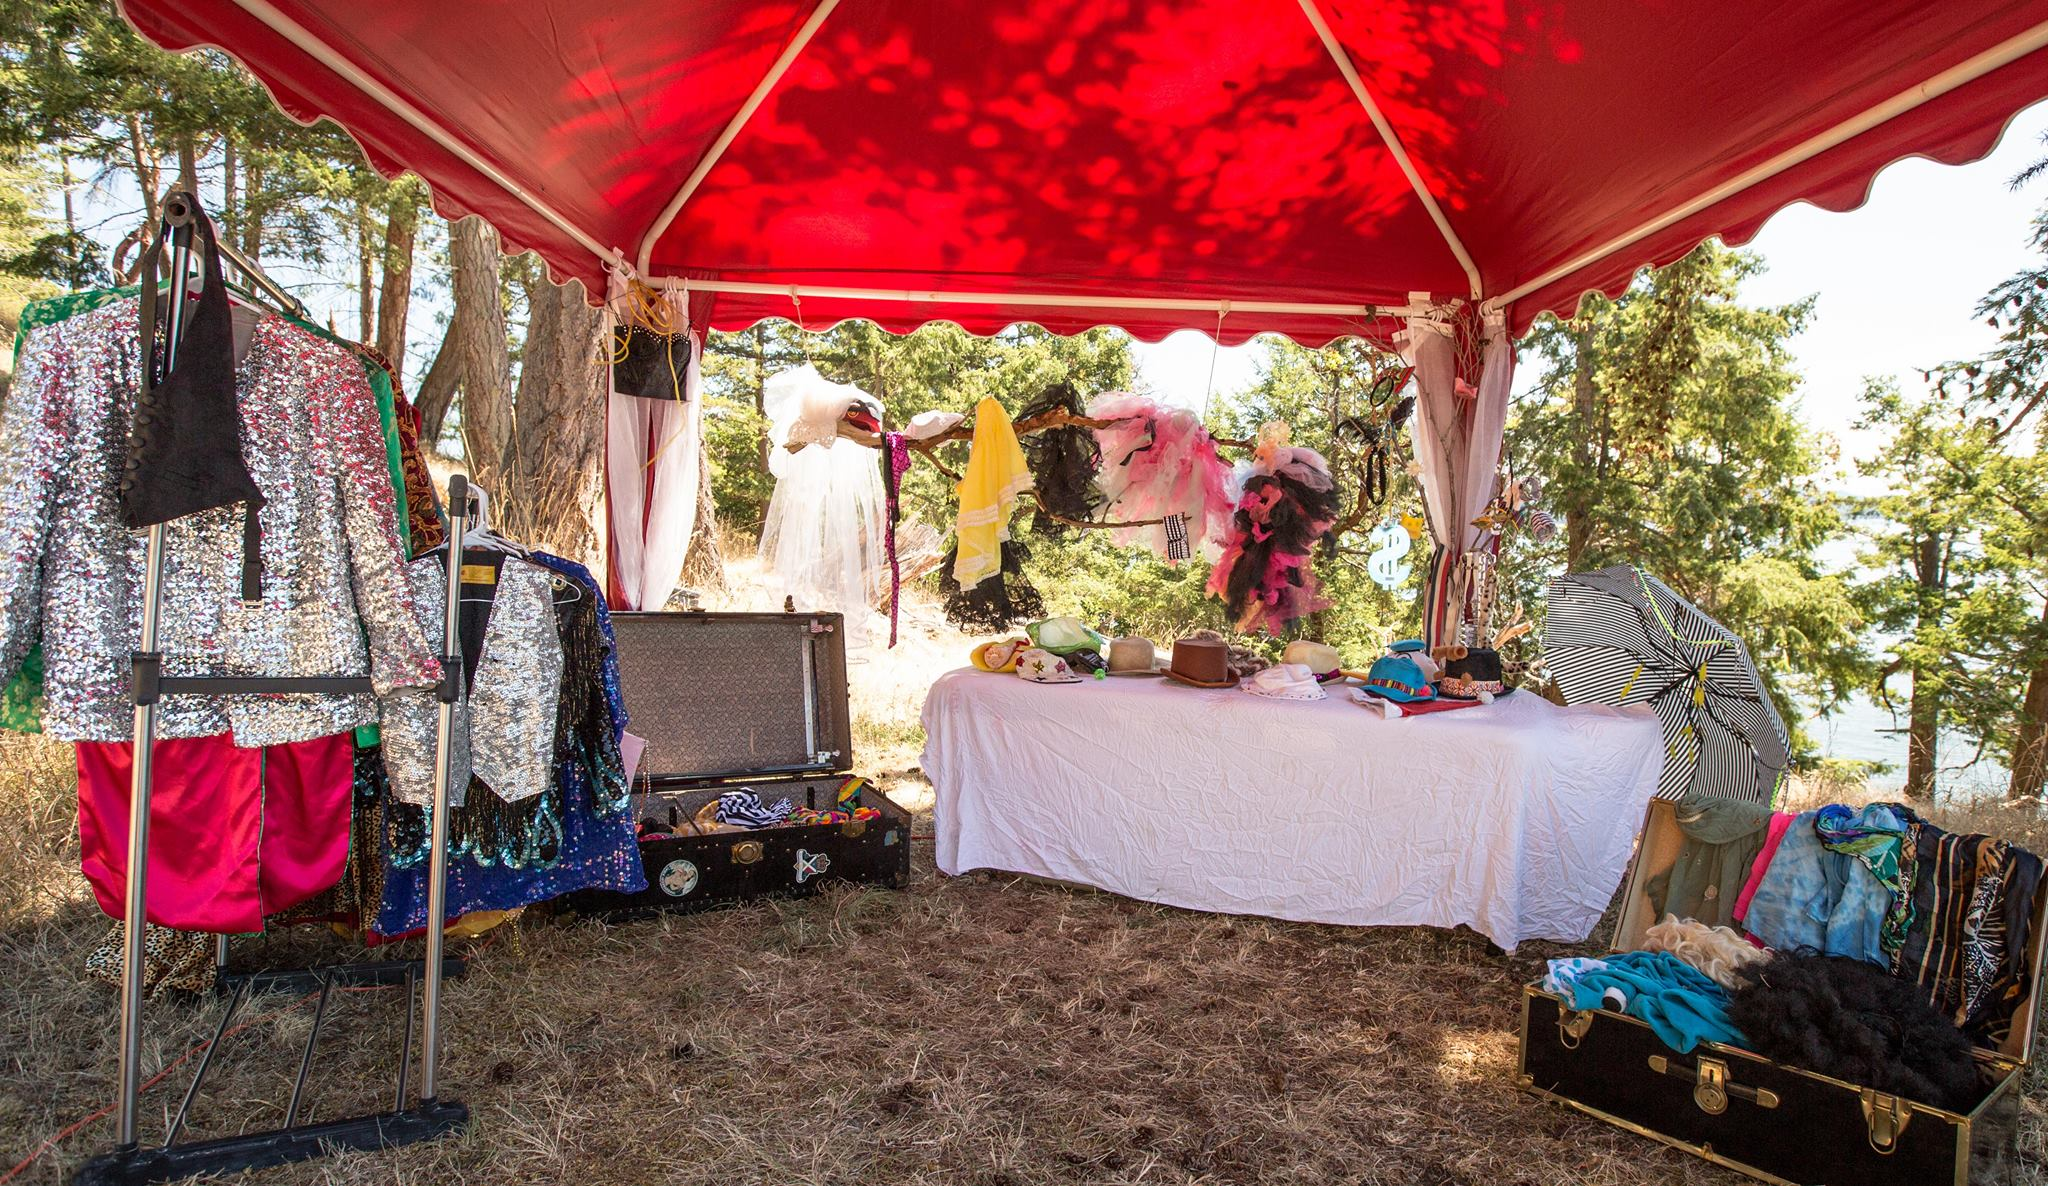 If you would like more information about how the Tickle Tent can make an appearance at one of your events please contact us for details. & The Tickle Tent | provibers